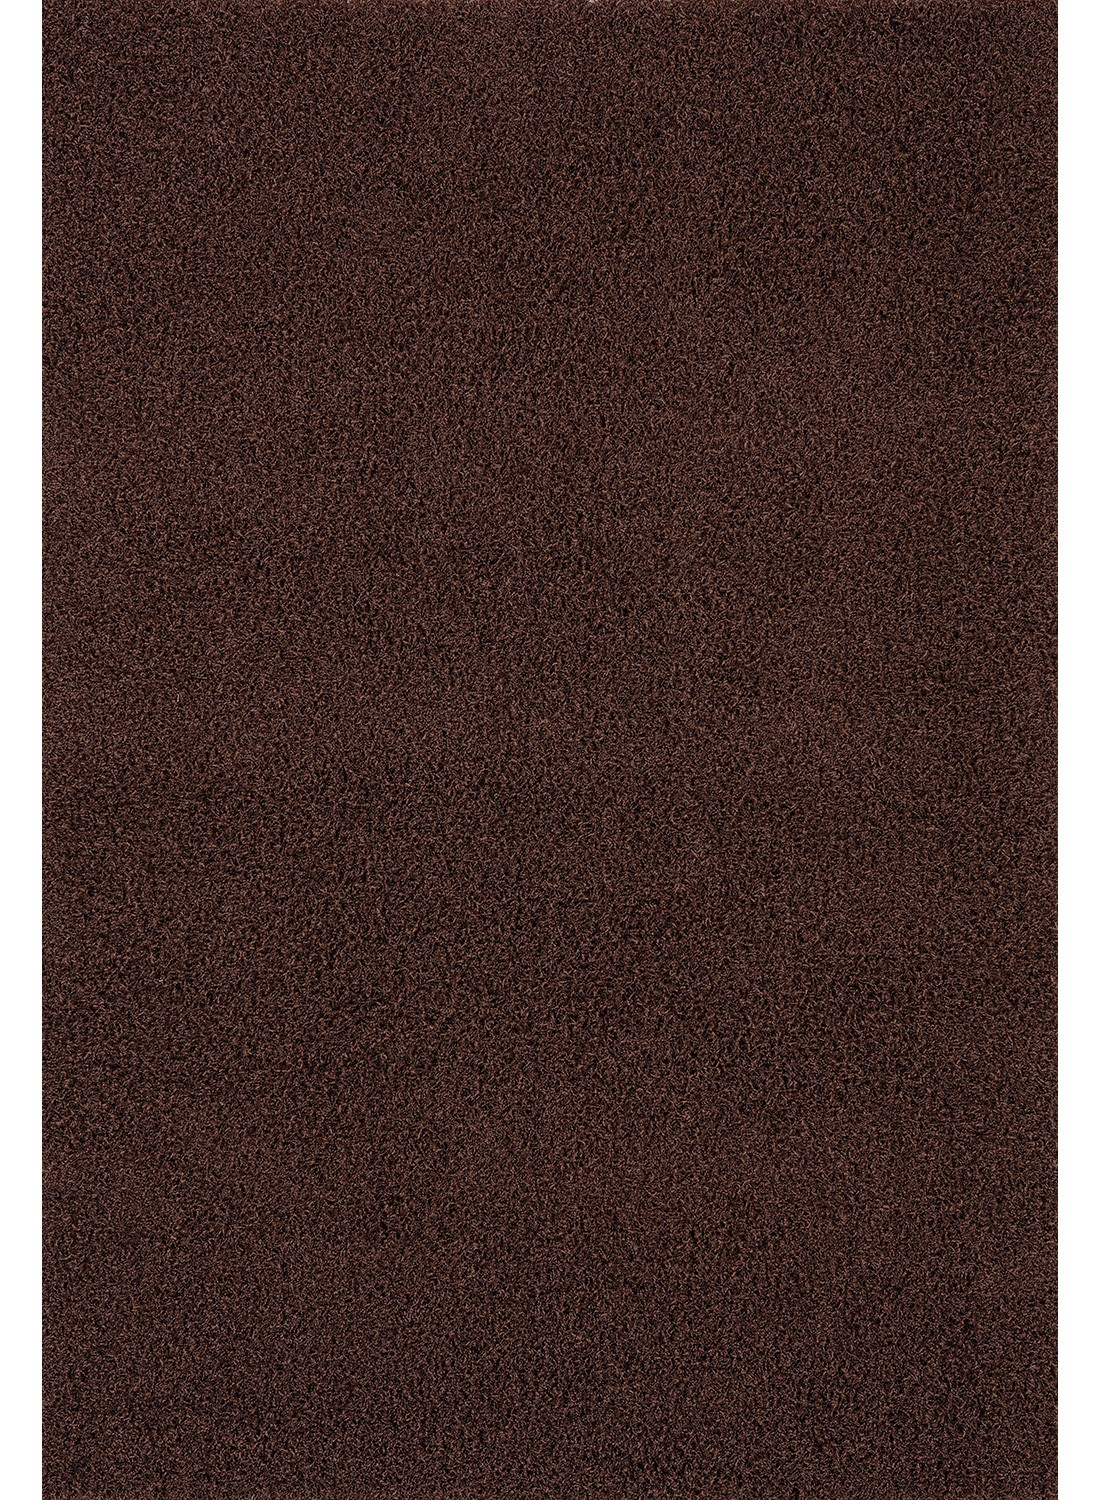 les tapis shaggy flex marron pour le salon. Black Bedroom Furniture Sets. Home Design Ideas